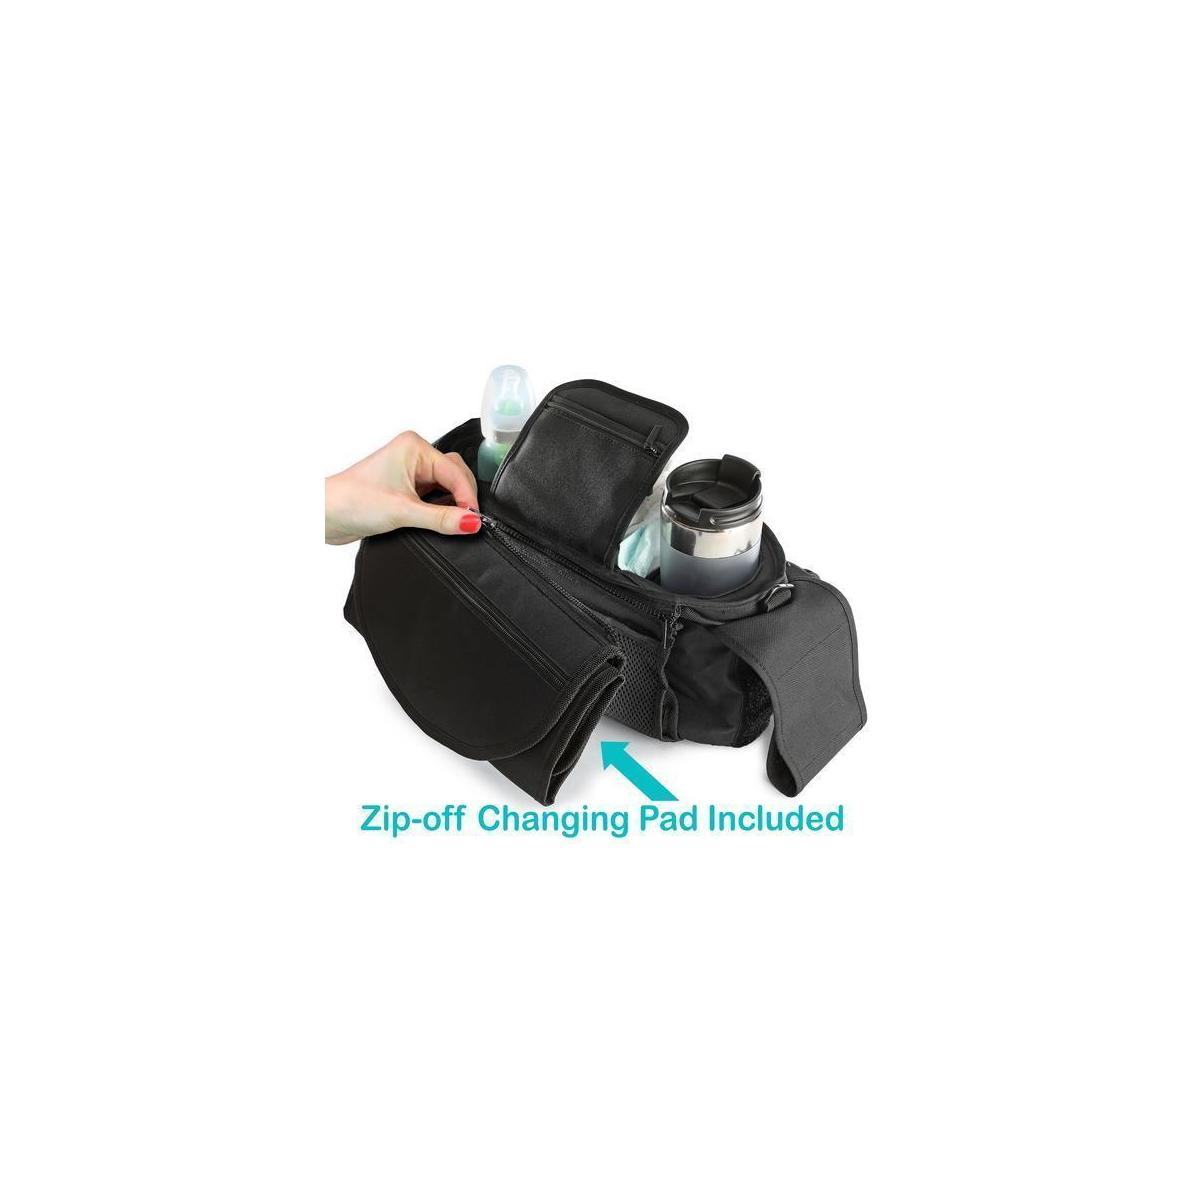 Baby Stroller Organizer with Insulated Cup Holders, Zip off Changing Pad, Shoulder Strap and Extra Large Storage Space